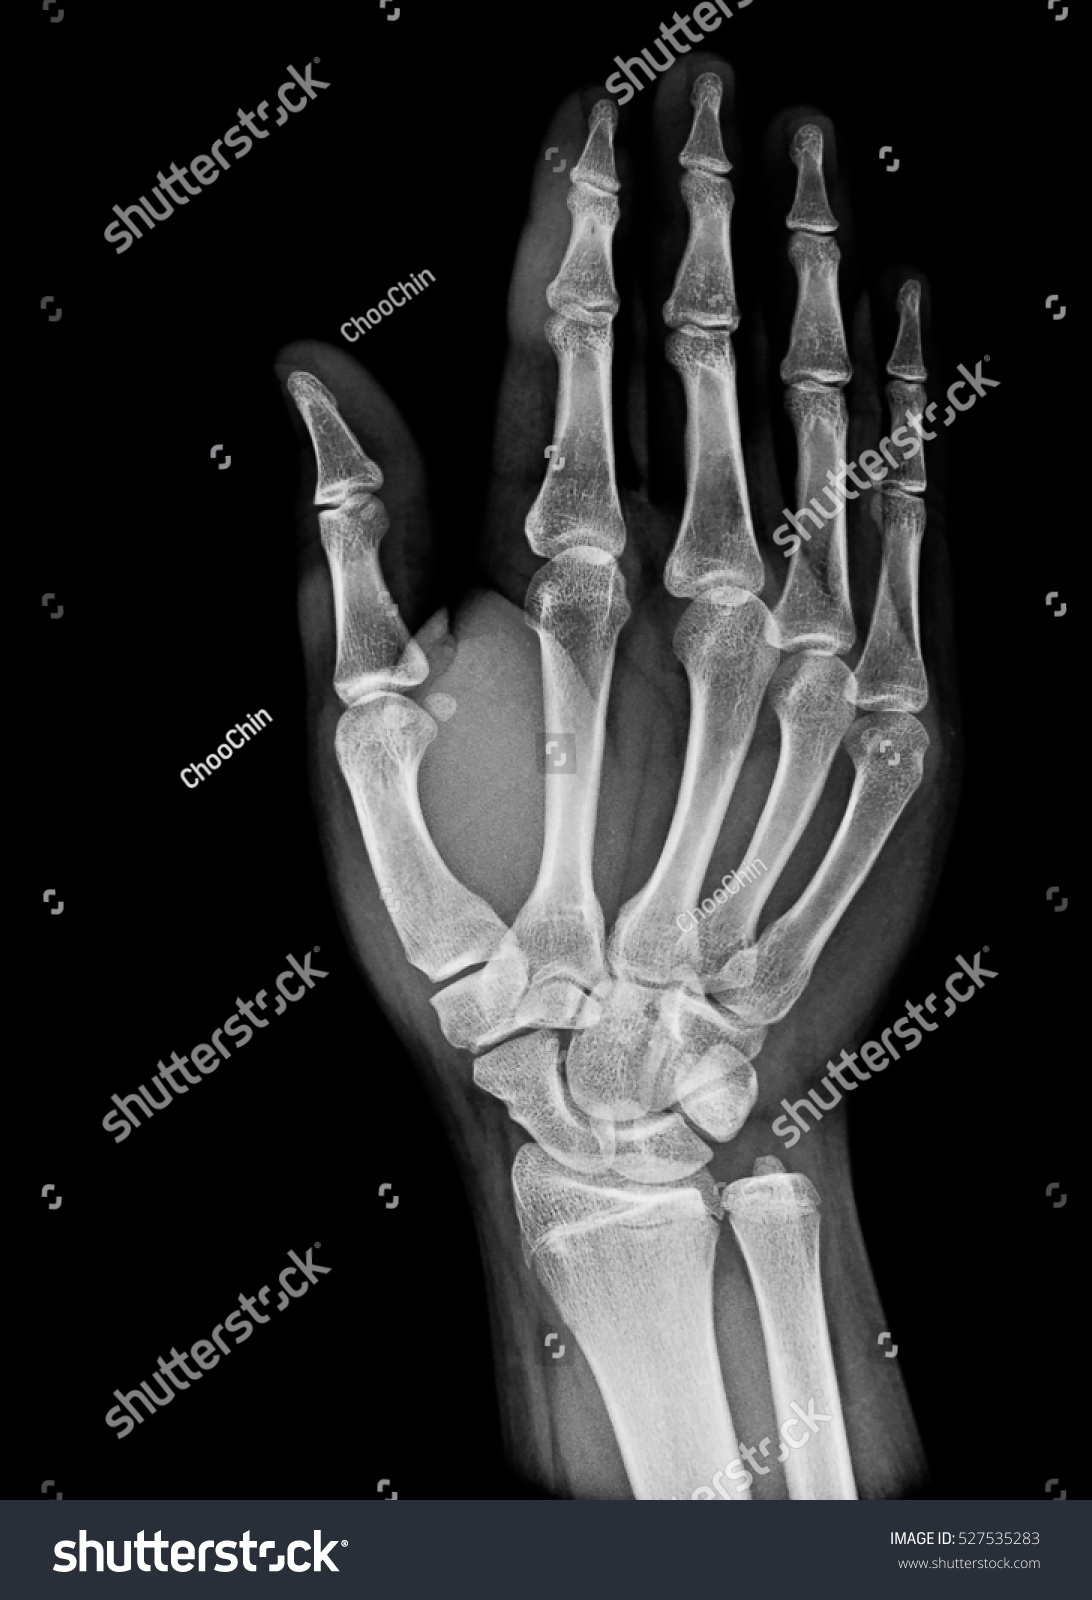 Xray Image Normal Hand Xray Medical Stock Photo (Edit Now) 527535283 ...